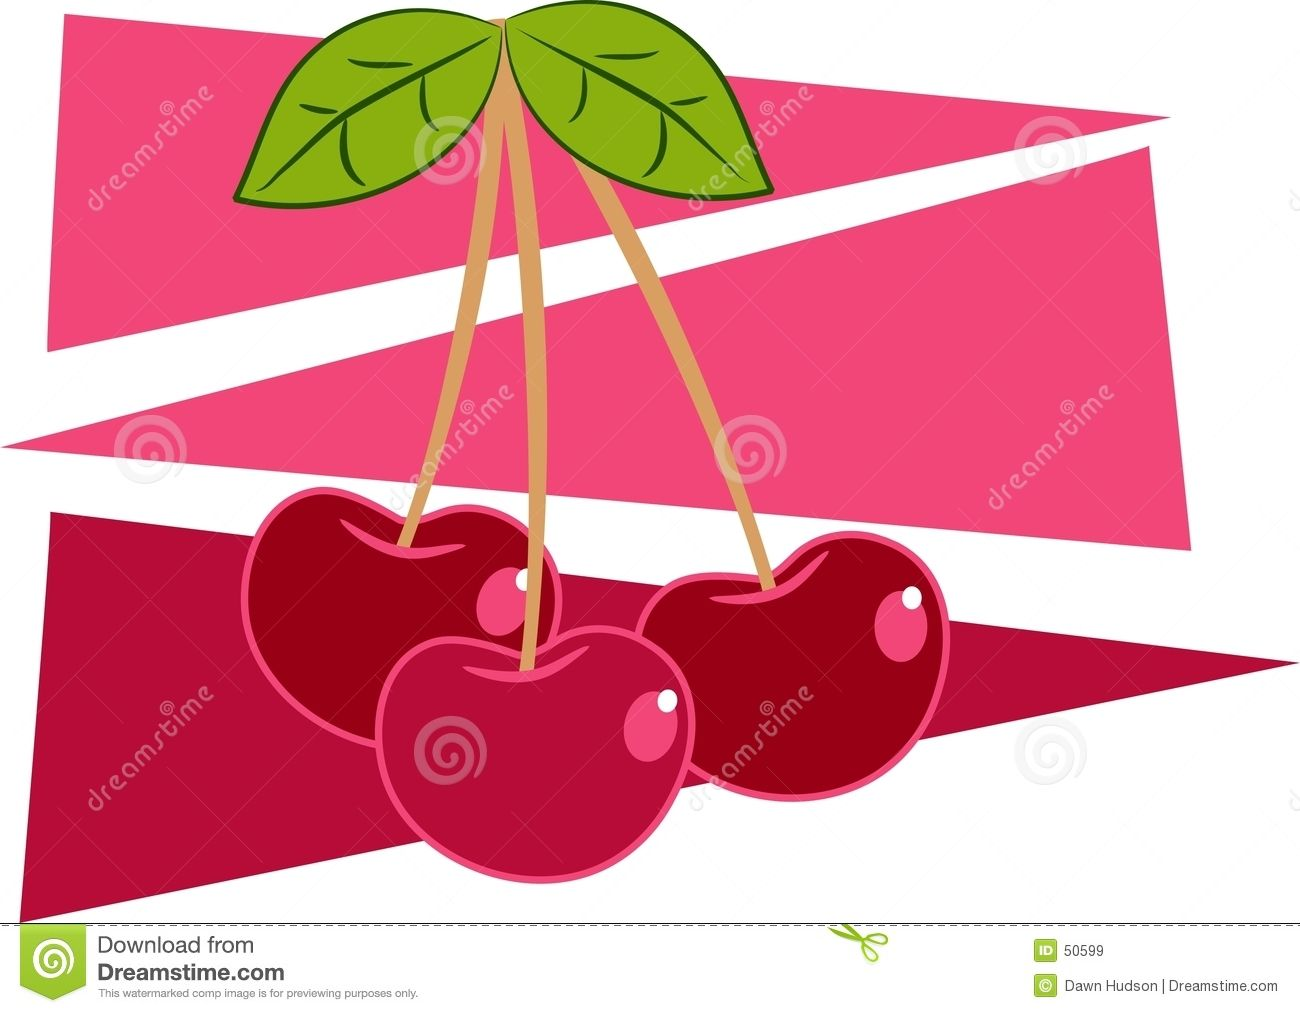 Cherries clipart bunch cherry. Drawing stylised of a